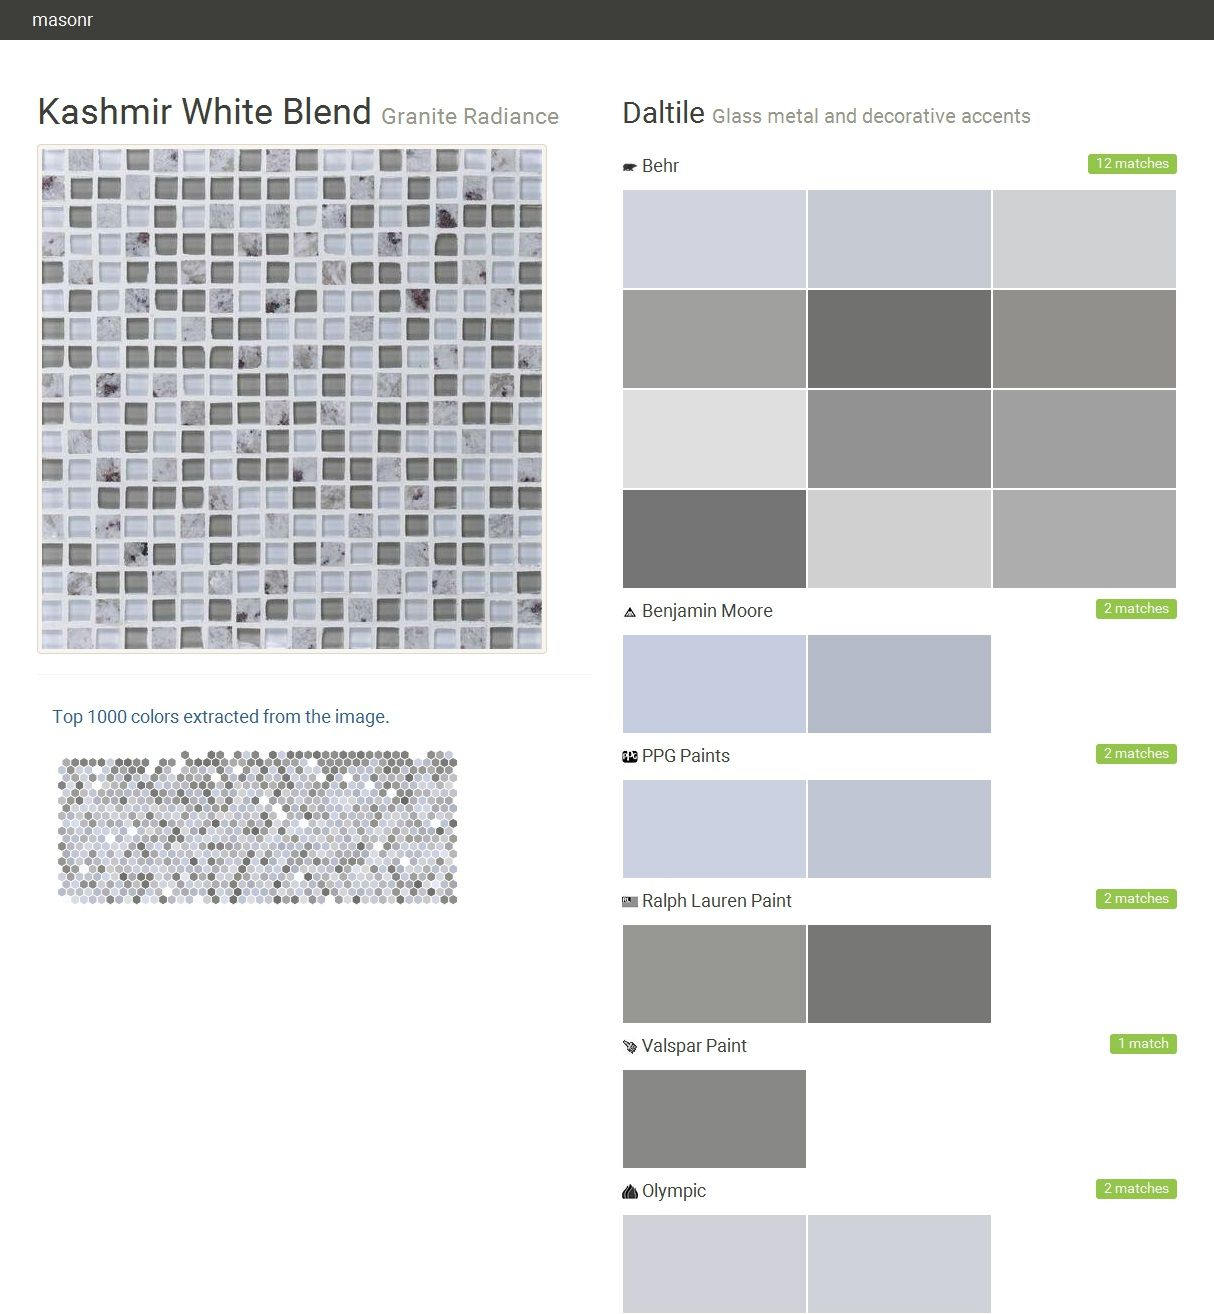 Kashmir White Blend. Granite Radiance. Glass metal and decorative accents. Daltile. Behr. Benjamin Moore. PPG Paints. Ralph Lauren Paint. Valspar Paint. Olympic.  Click the gray Visit button to see the matching paint names.